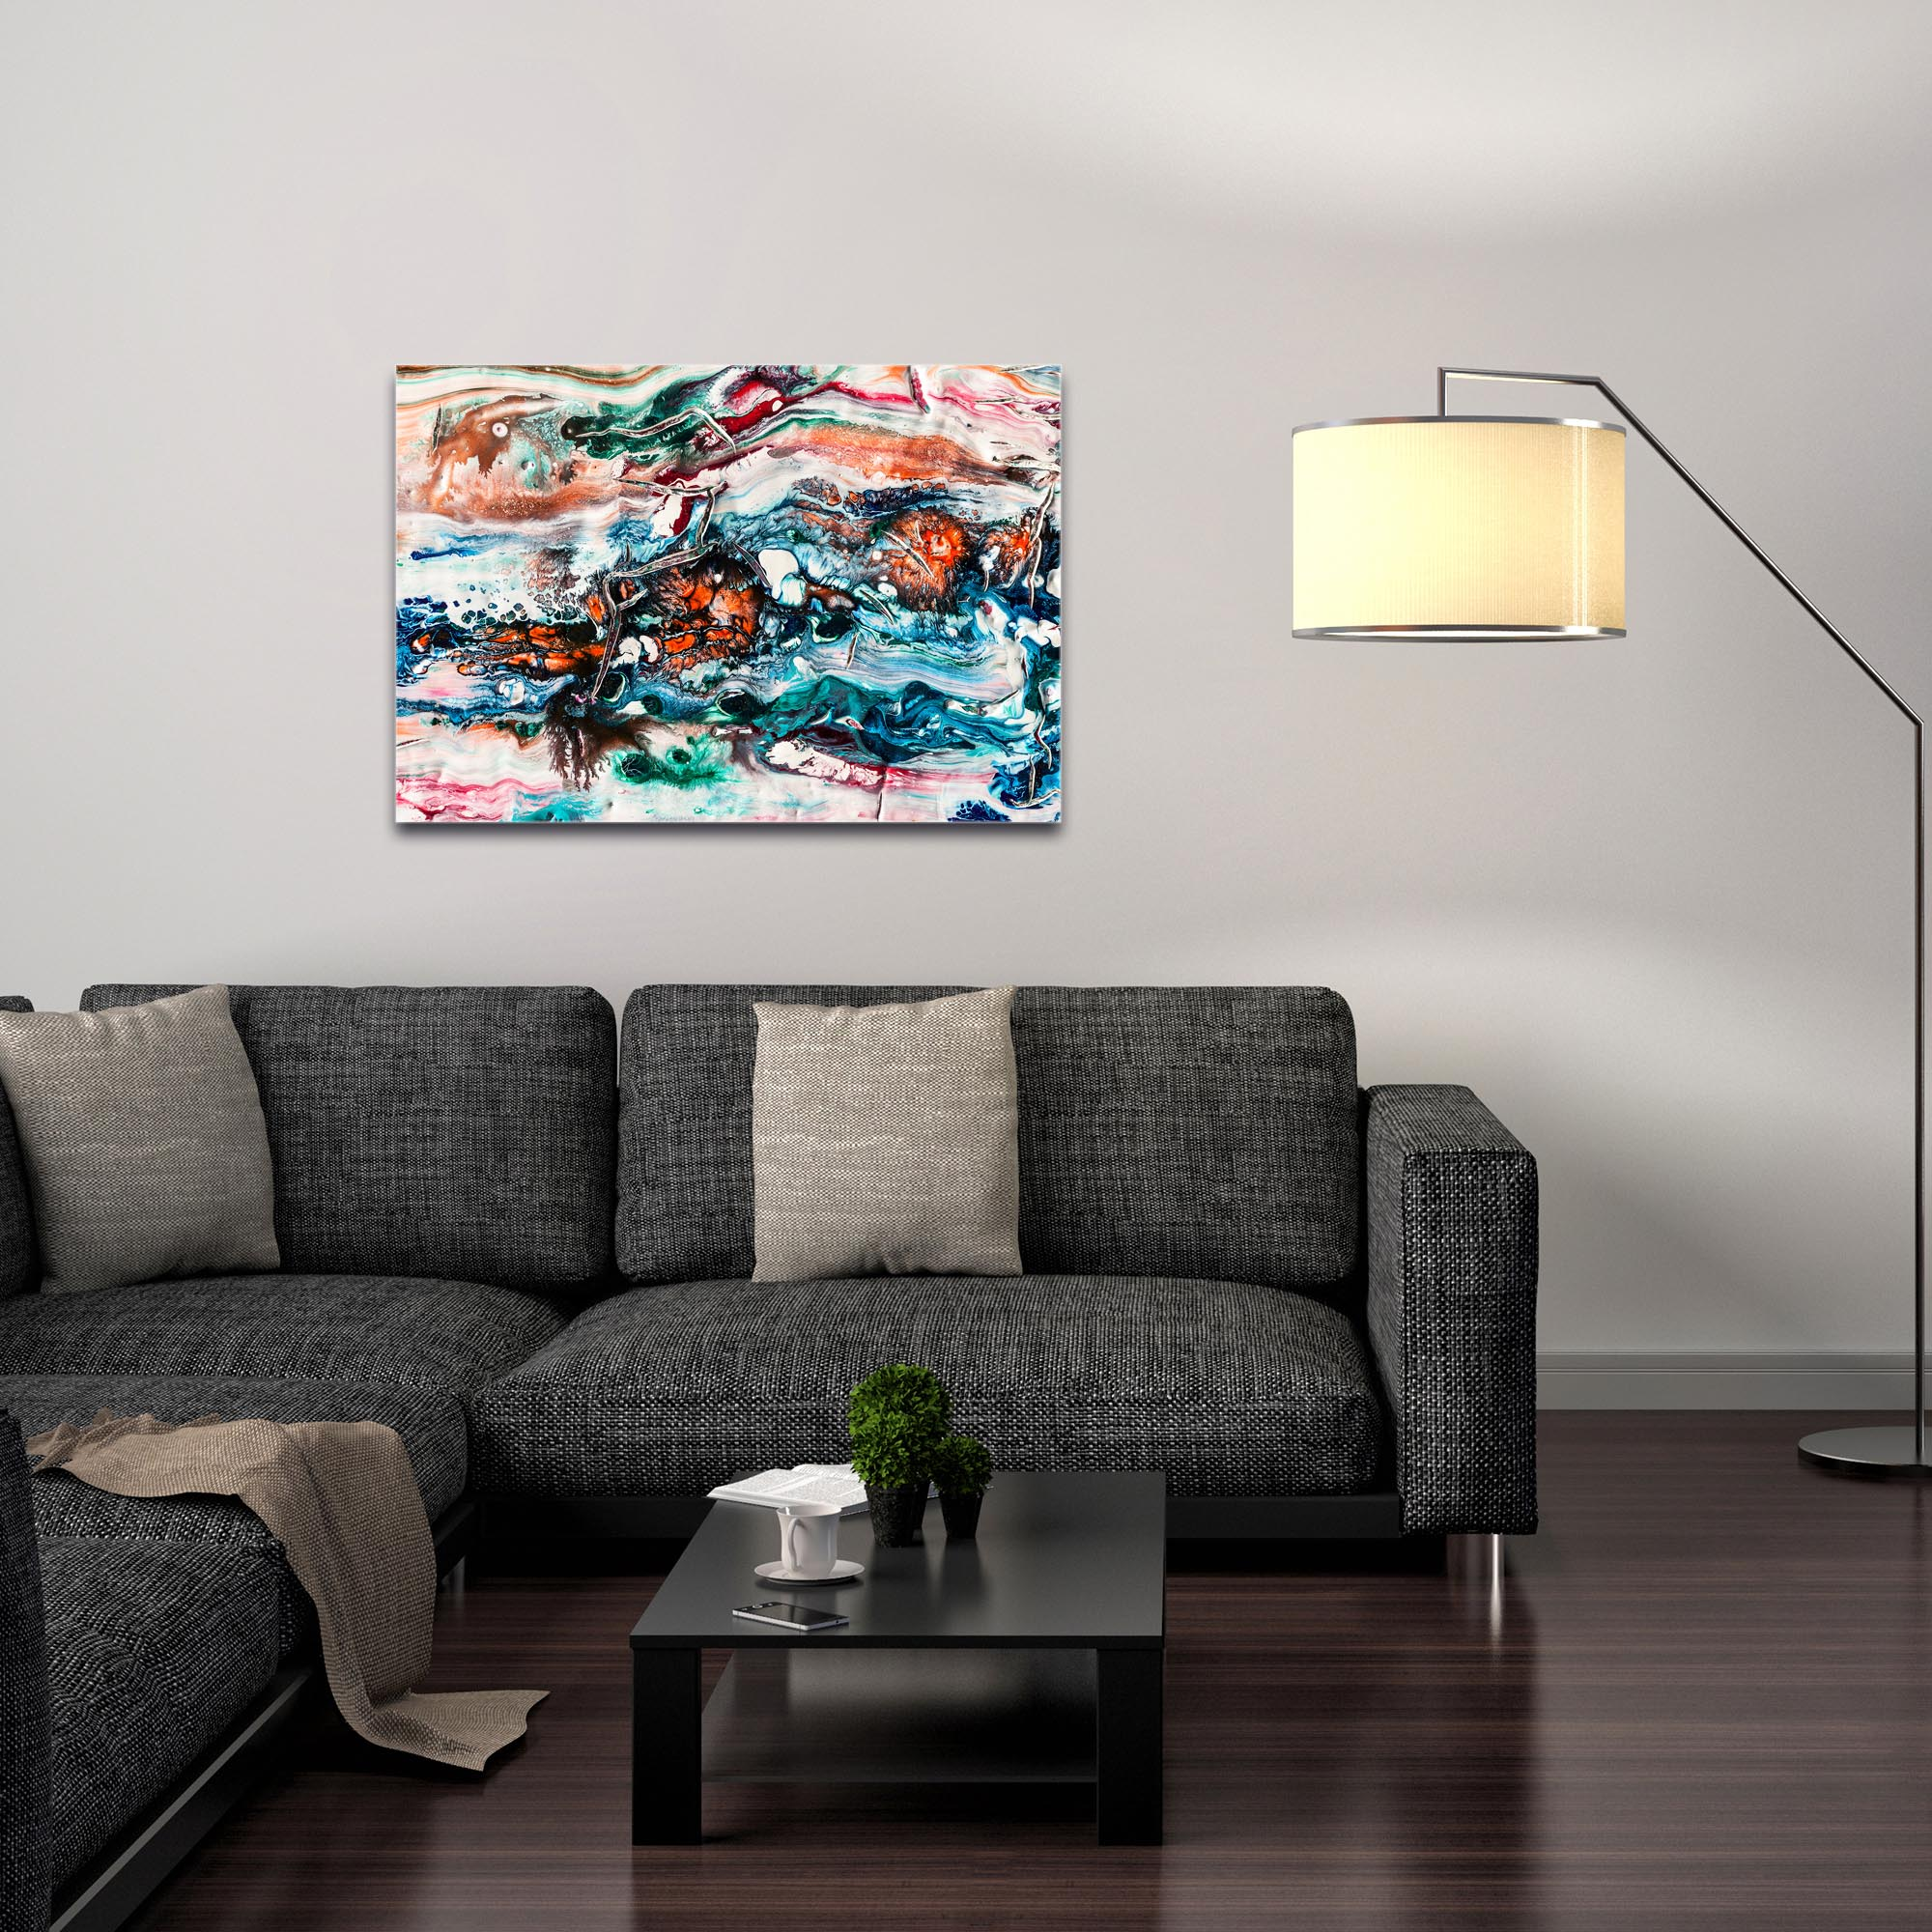 Abstract Wall Art 'Sunset On Her Breath 2' - Colorful Urban Decor on Metal or Plexiglass - Image 3